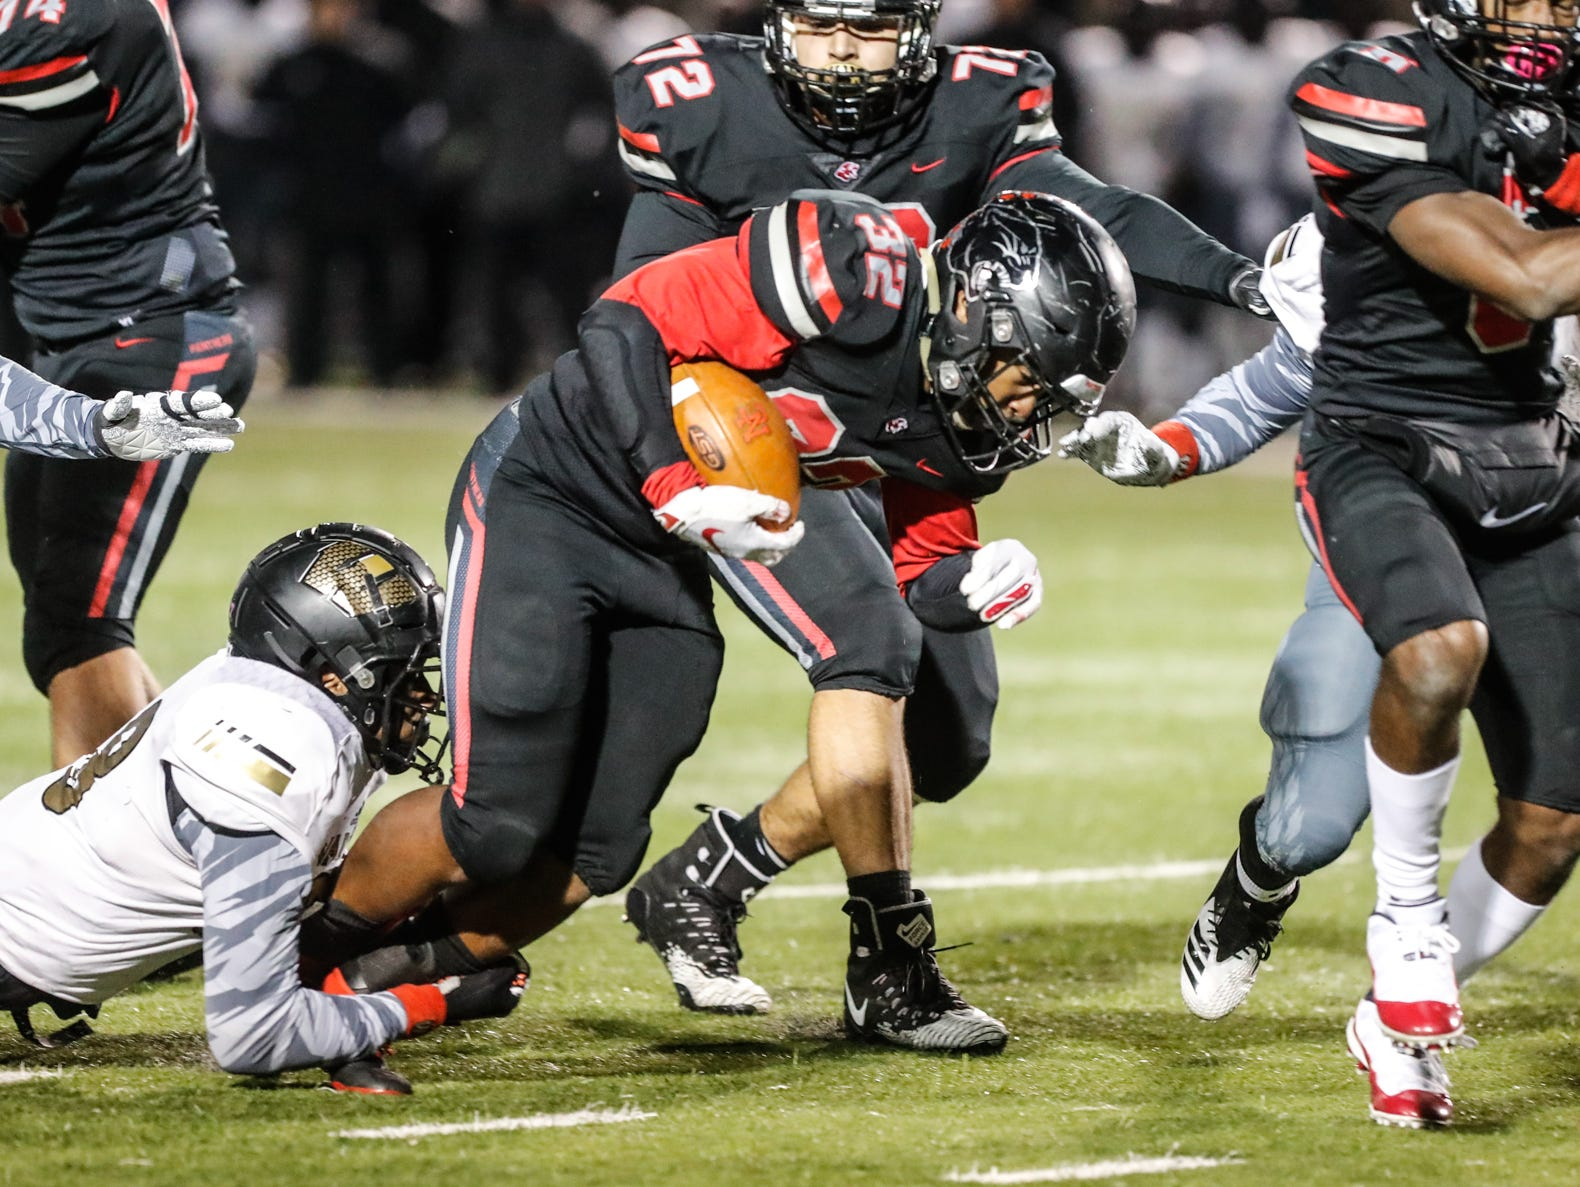 The North Central High School Panthers running back Alexander Tarver (32) is tackled during a regional finals game against the Warren Central High School Warriors at North Central High School on Friday, Nov. 9, 2018.